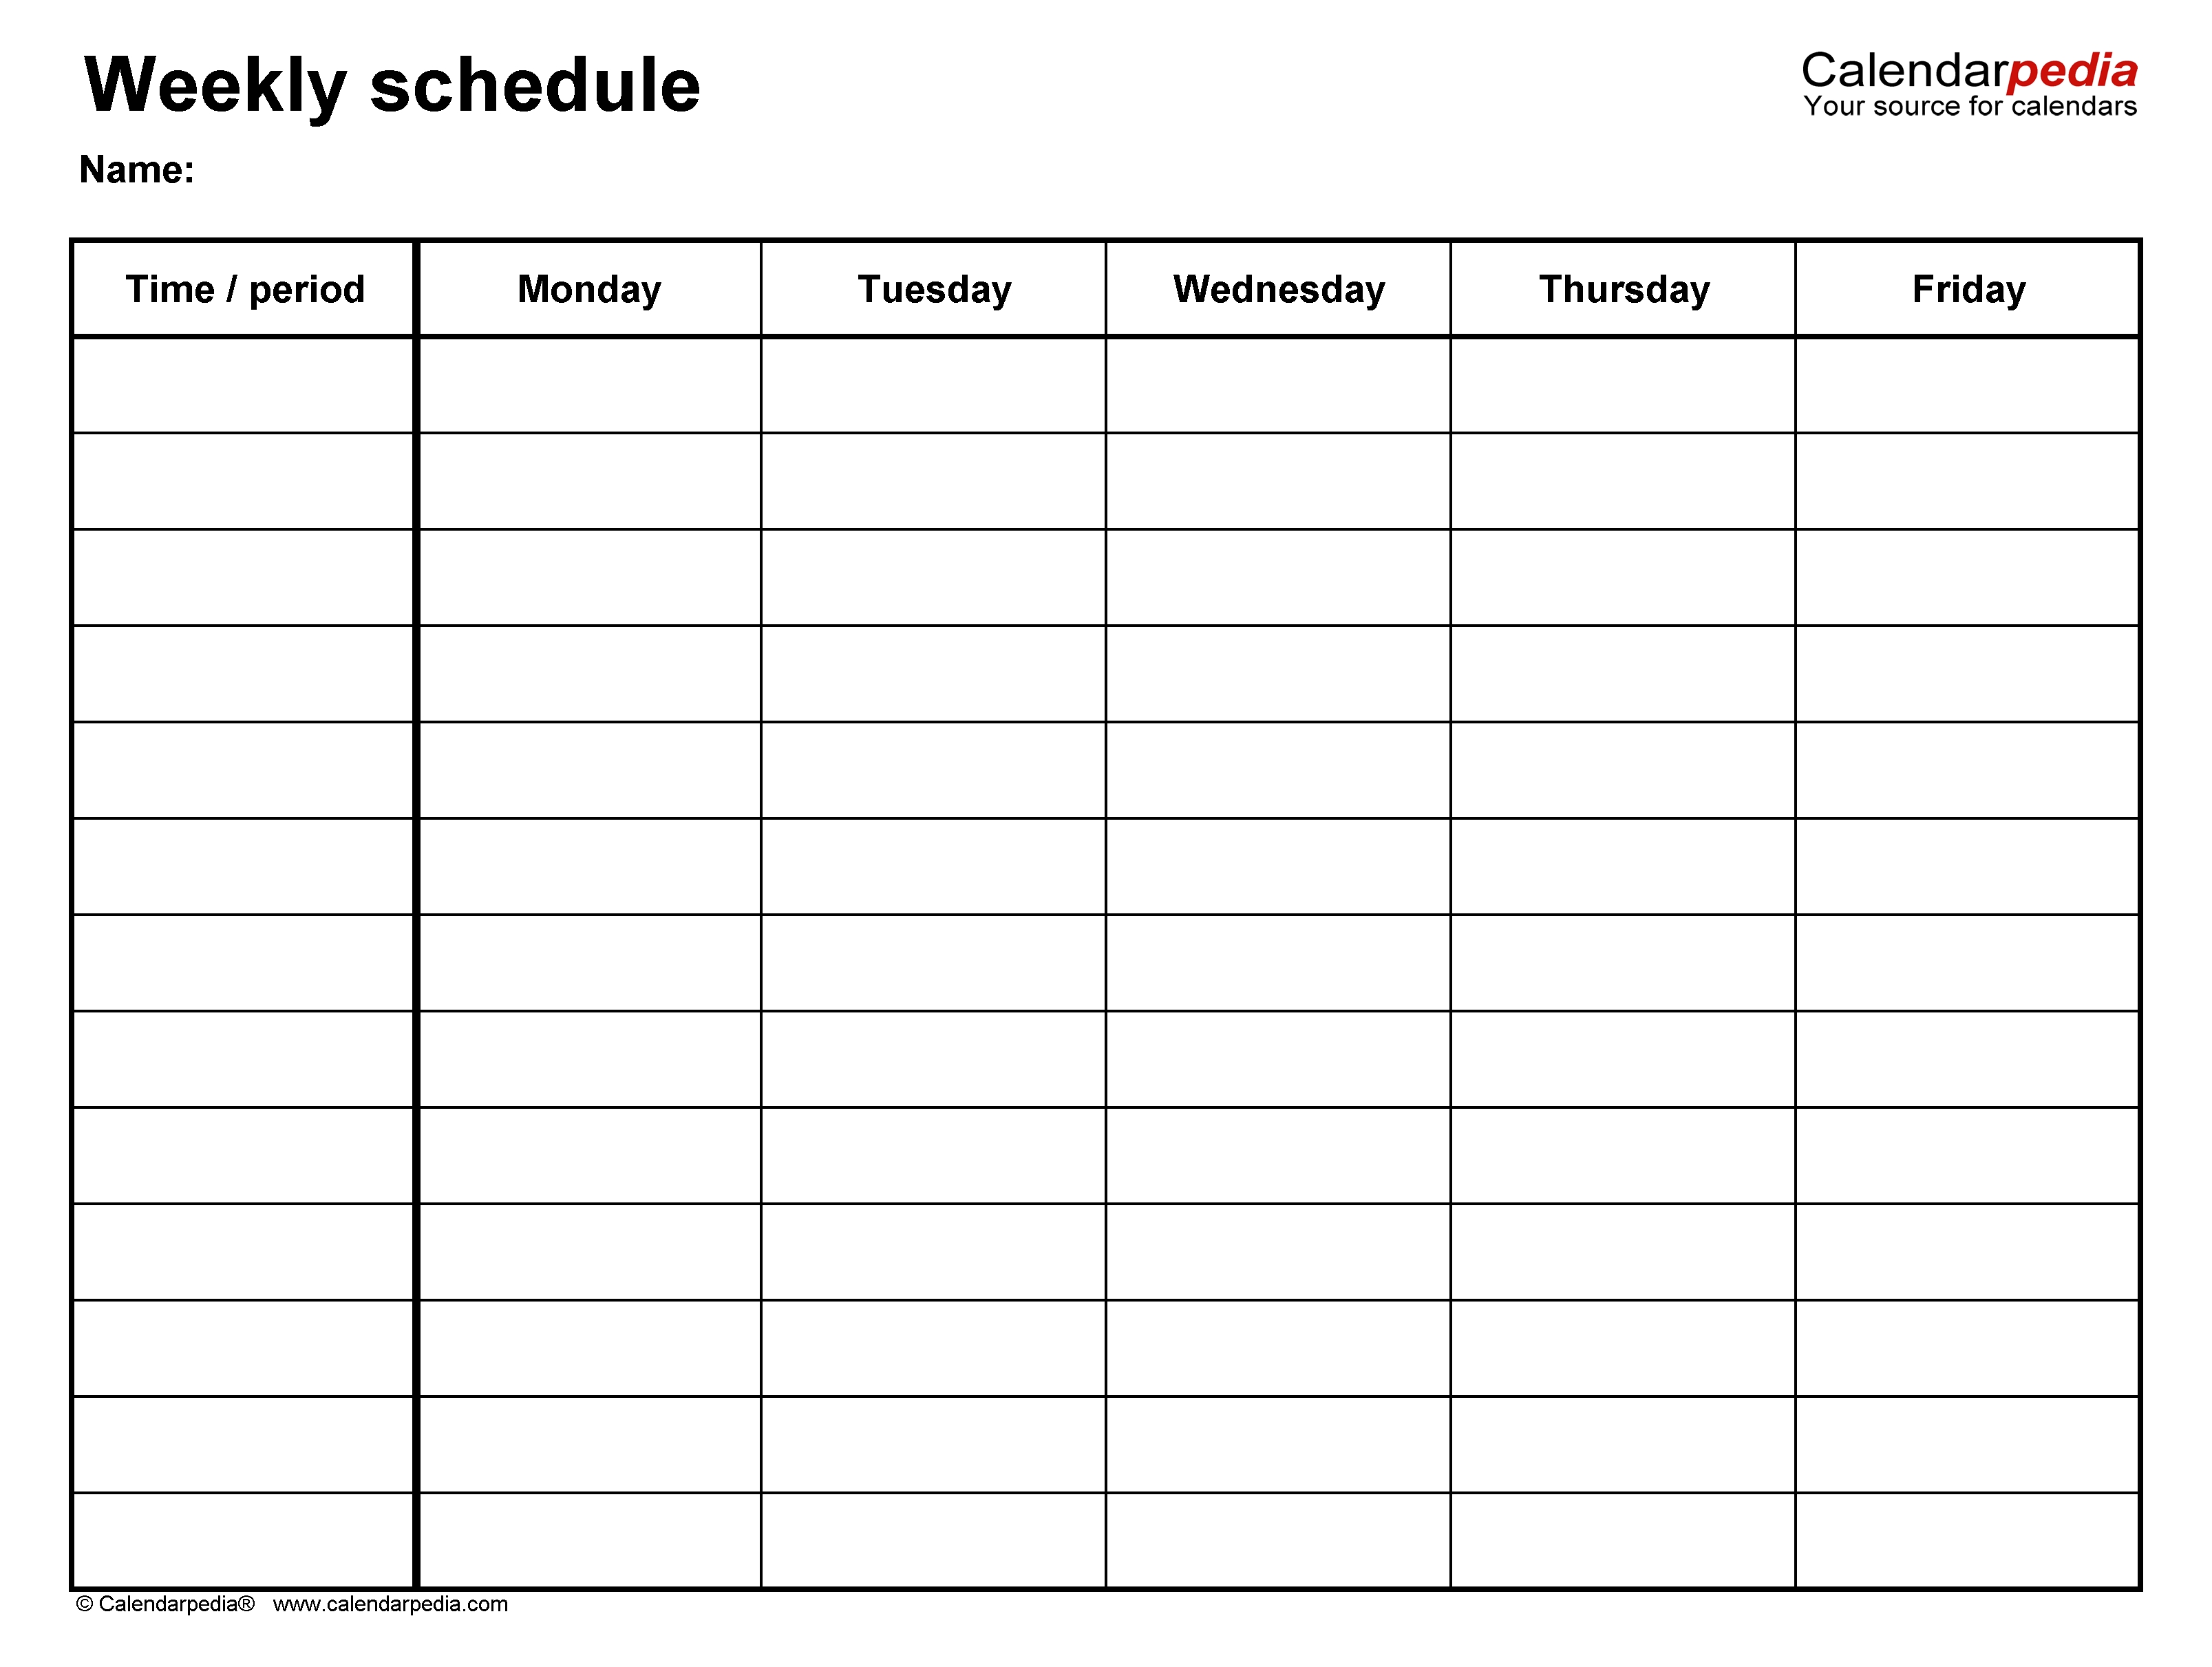 Free Weekly Schedule Templates For Word - 18 Templates pertaining to Monday Through Friday Appointment Calendar